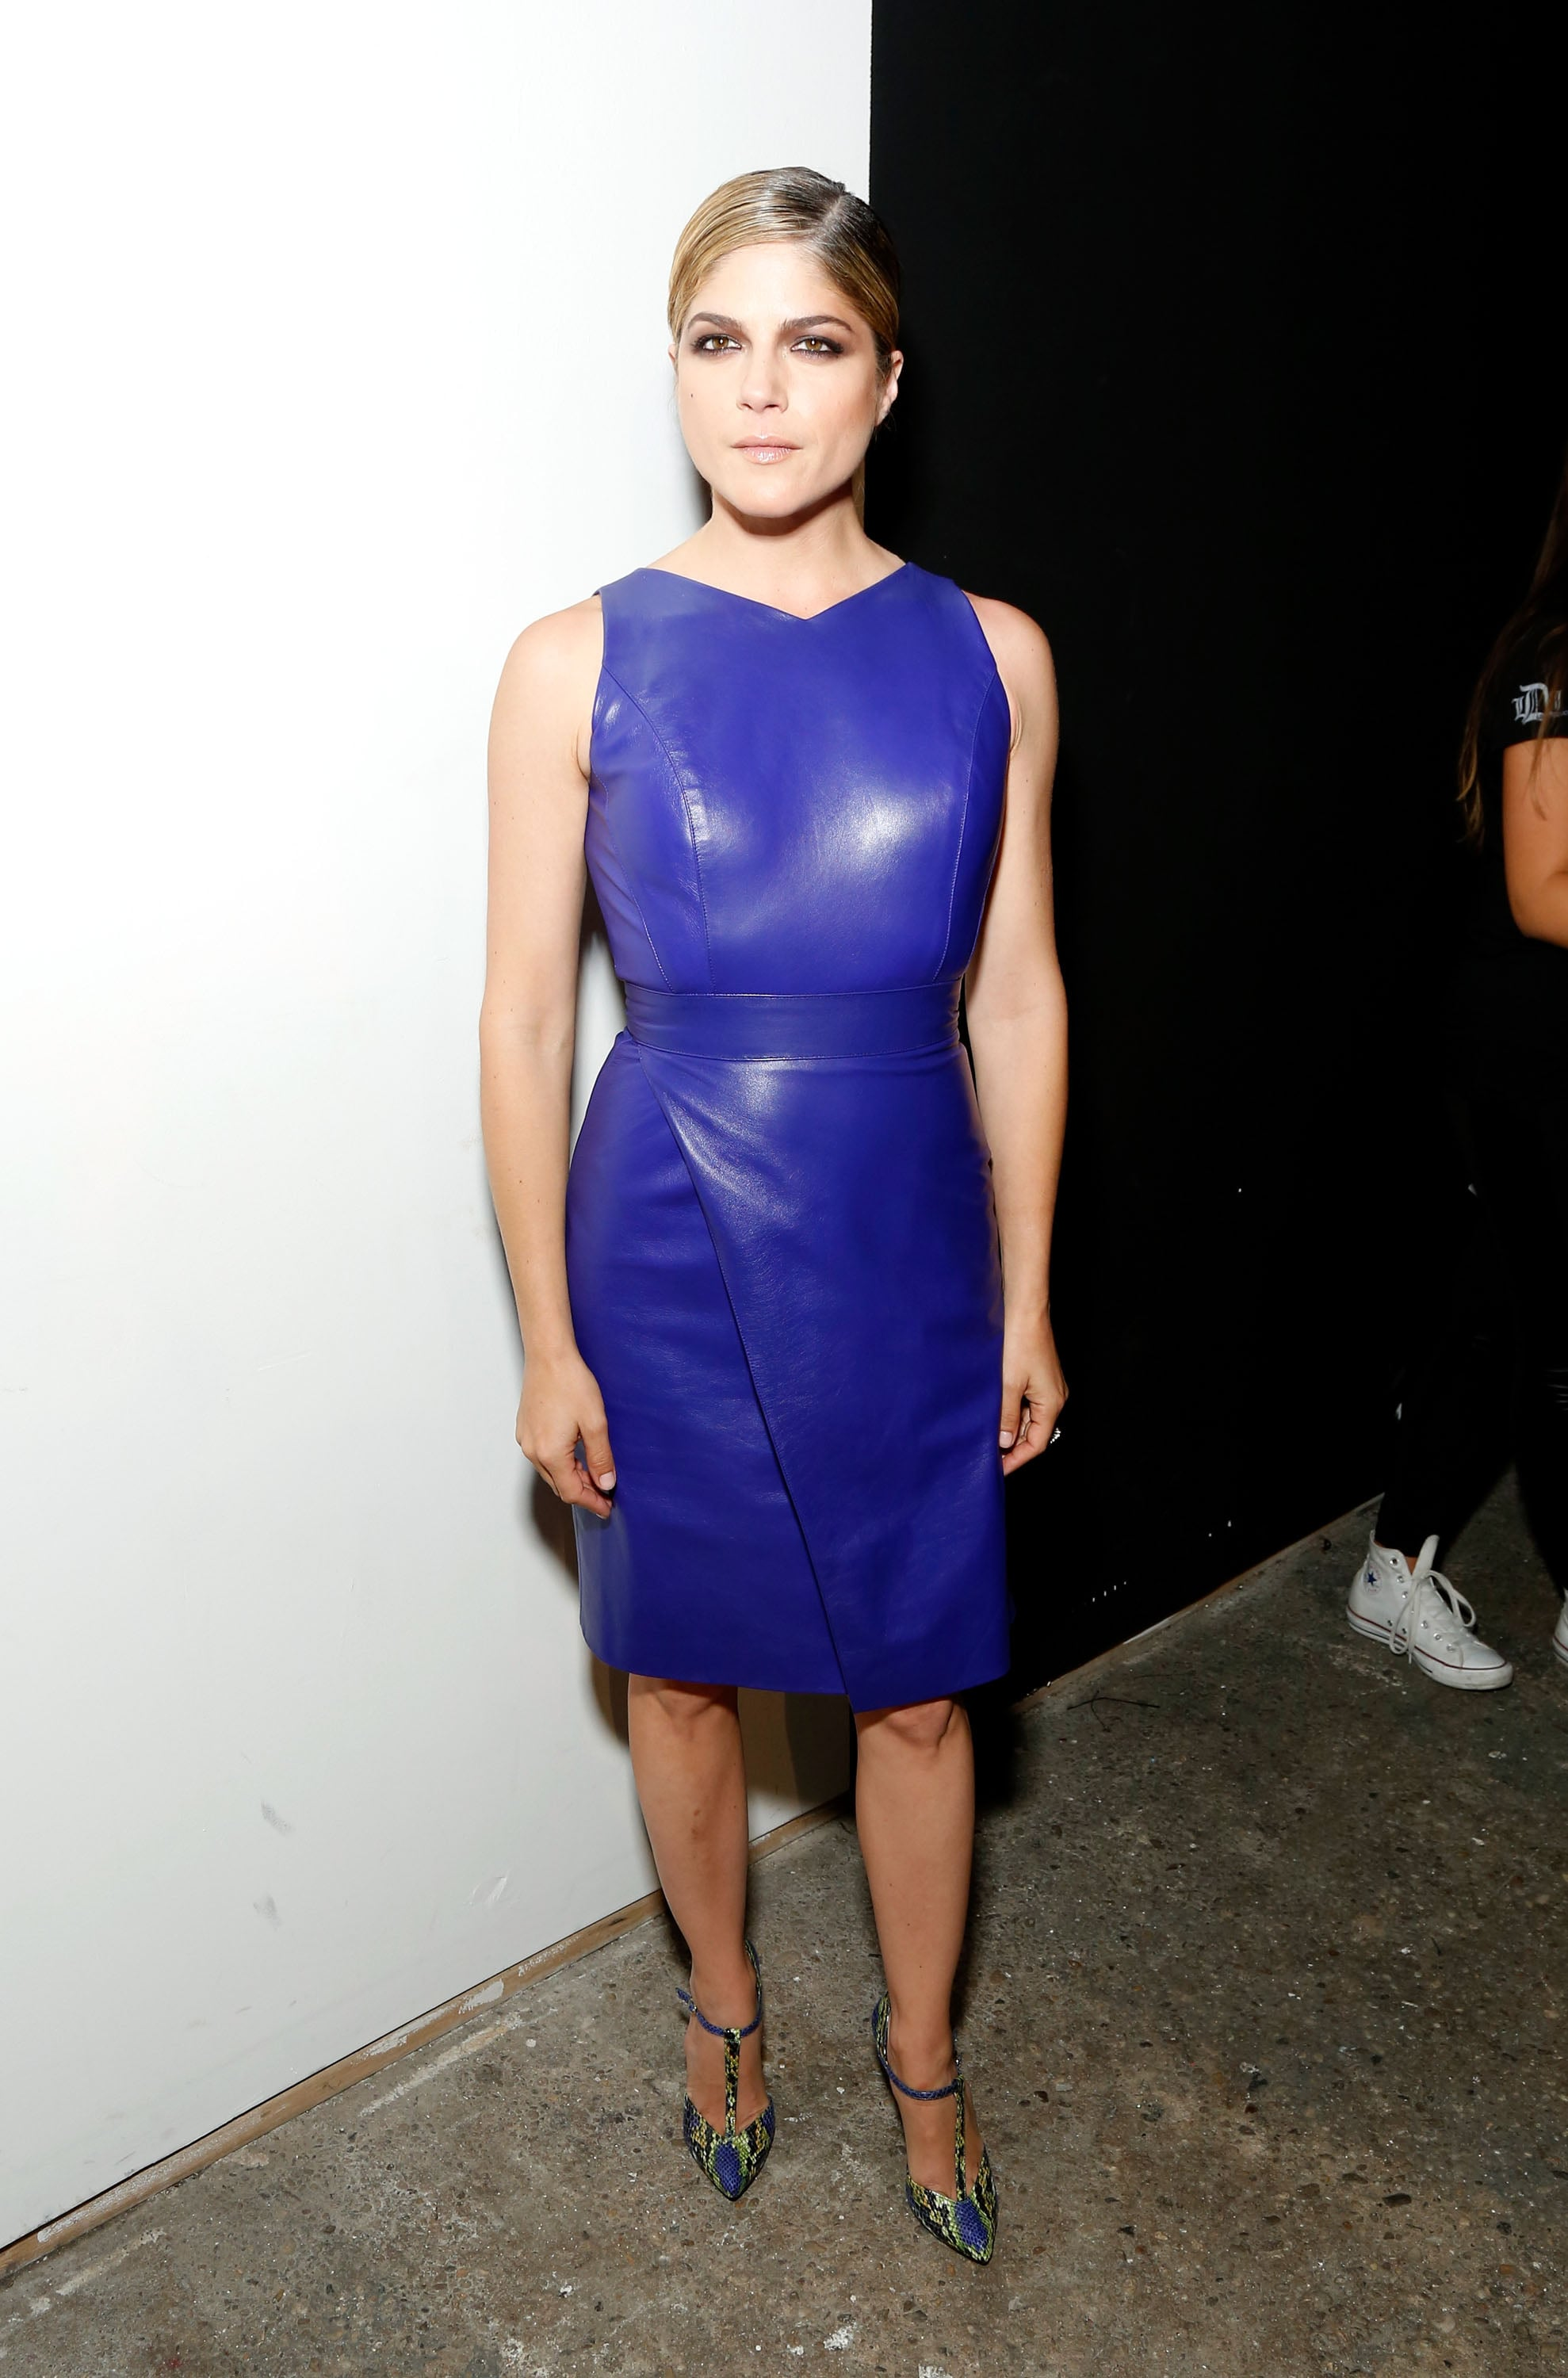 Selma Blair sported a sexy leather dress for the Christian Siriano runway show on Saturday.